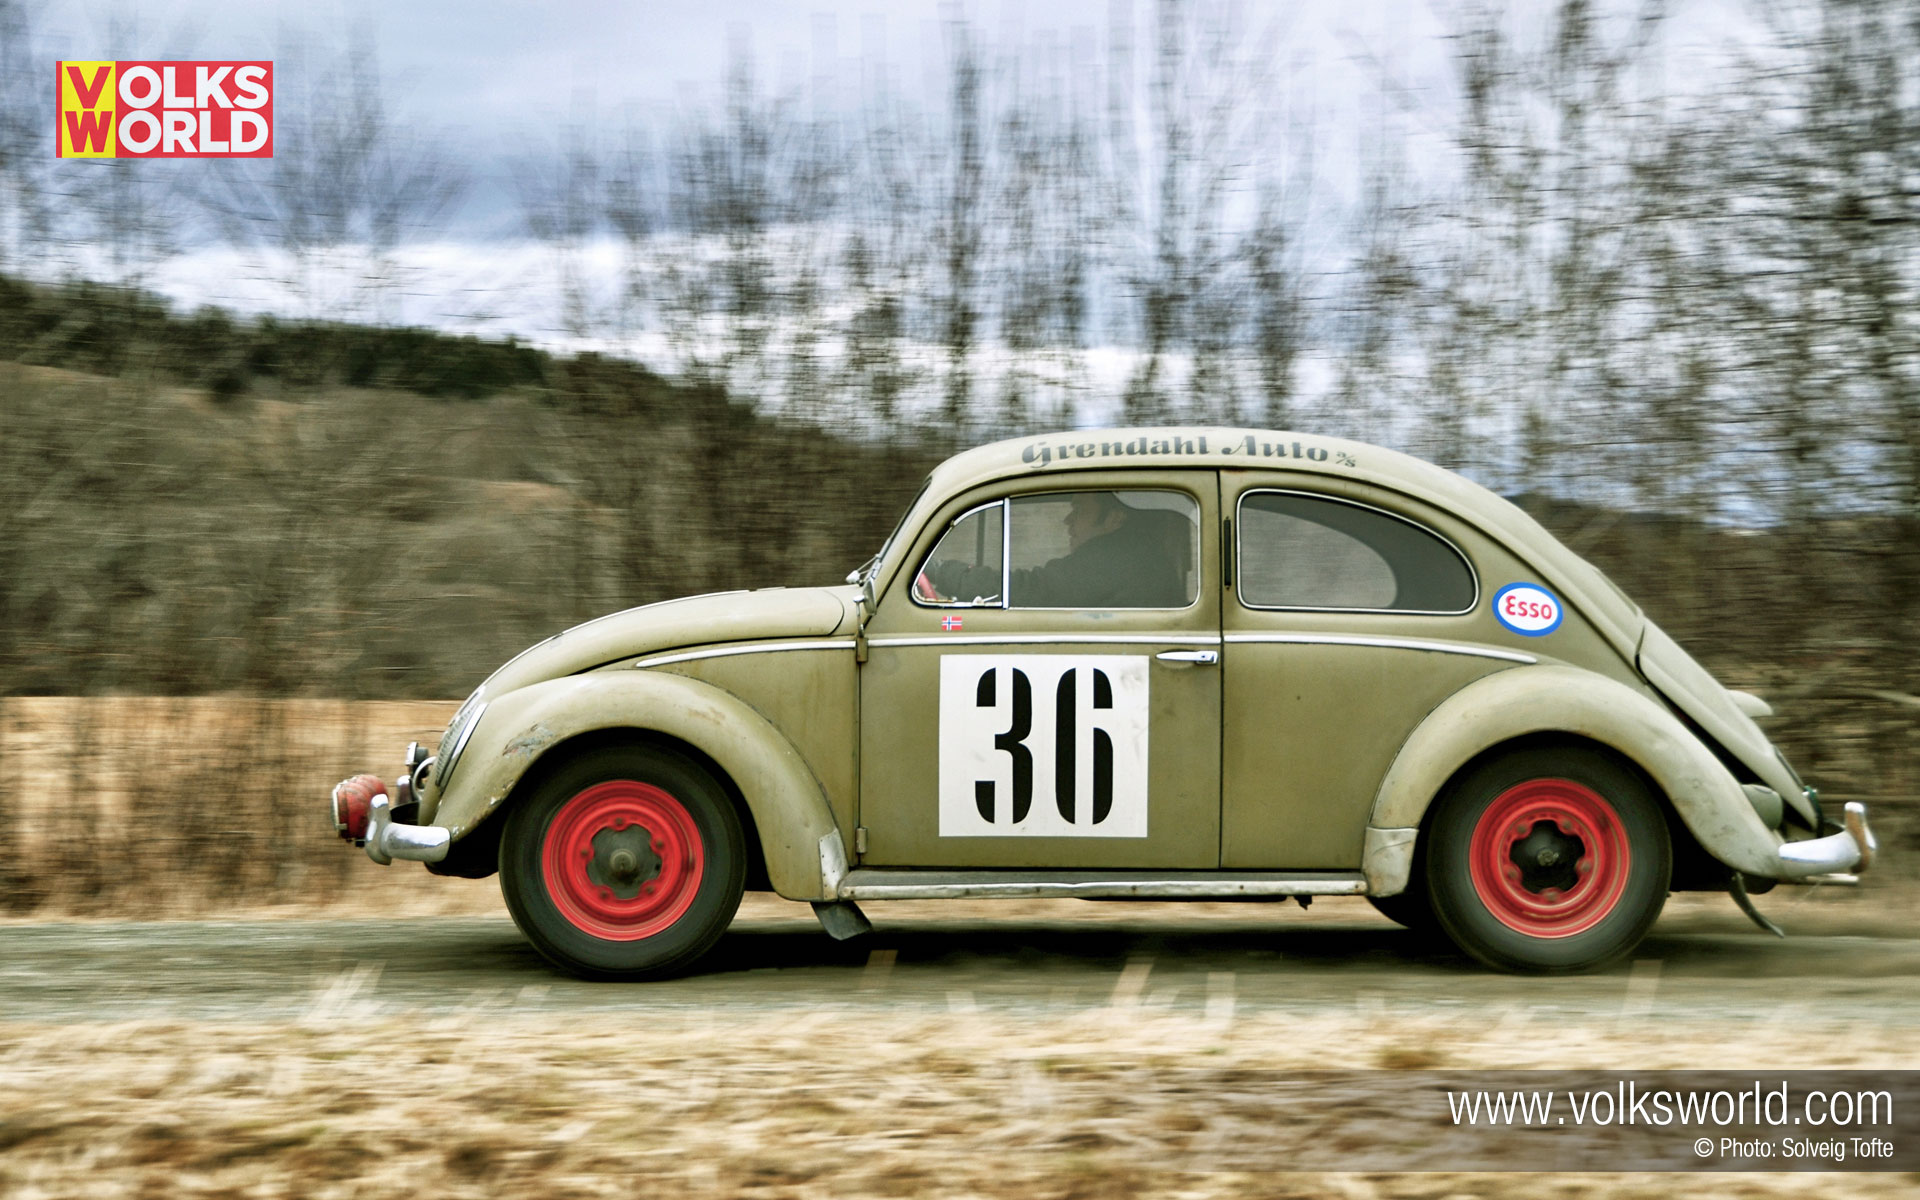 1952 split window vw beetle desktop wallpaper volksworld for 1952 split window vw bug